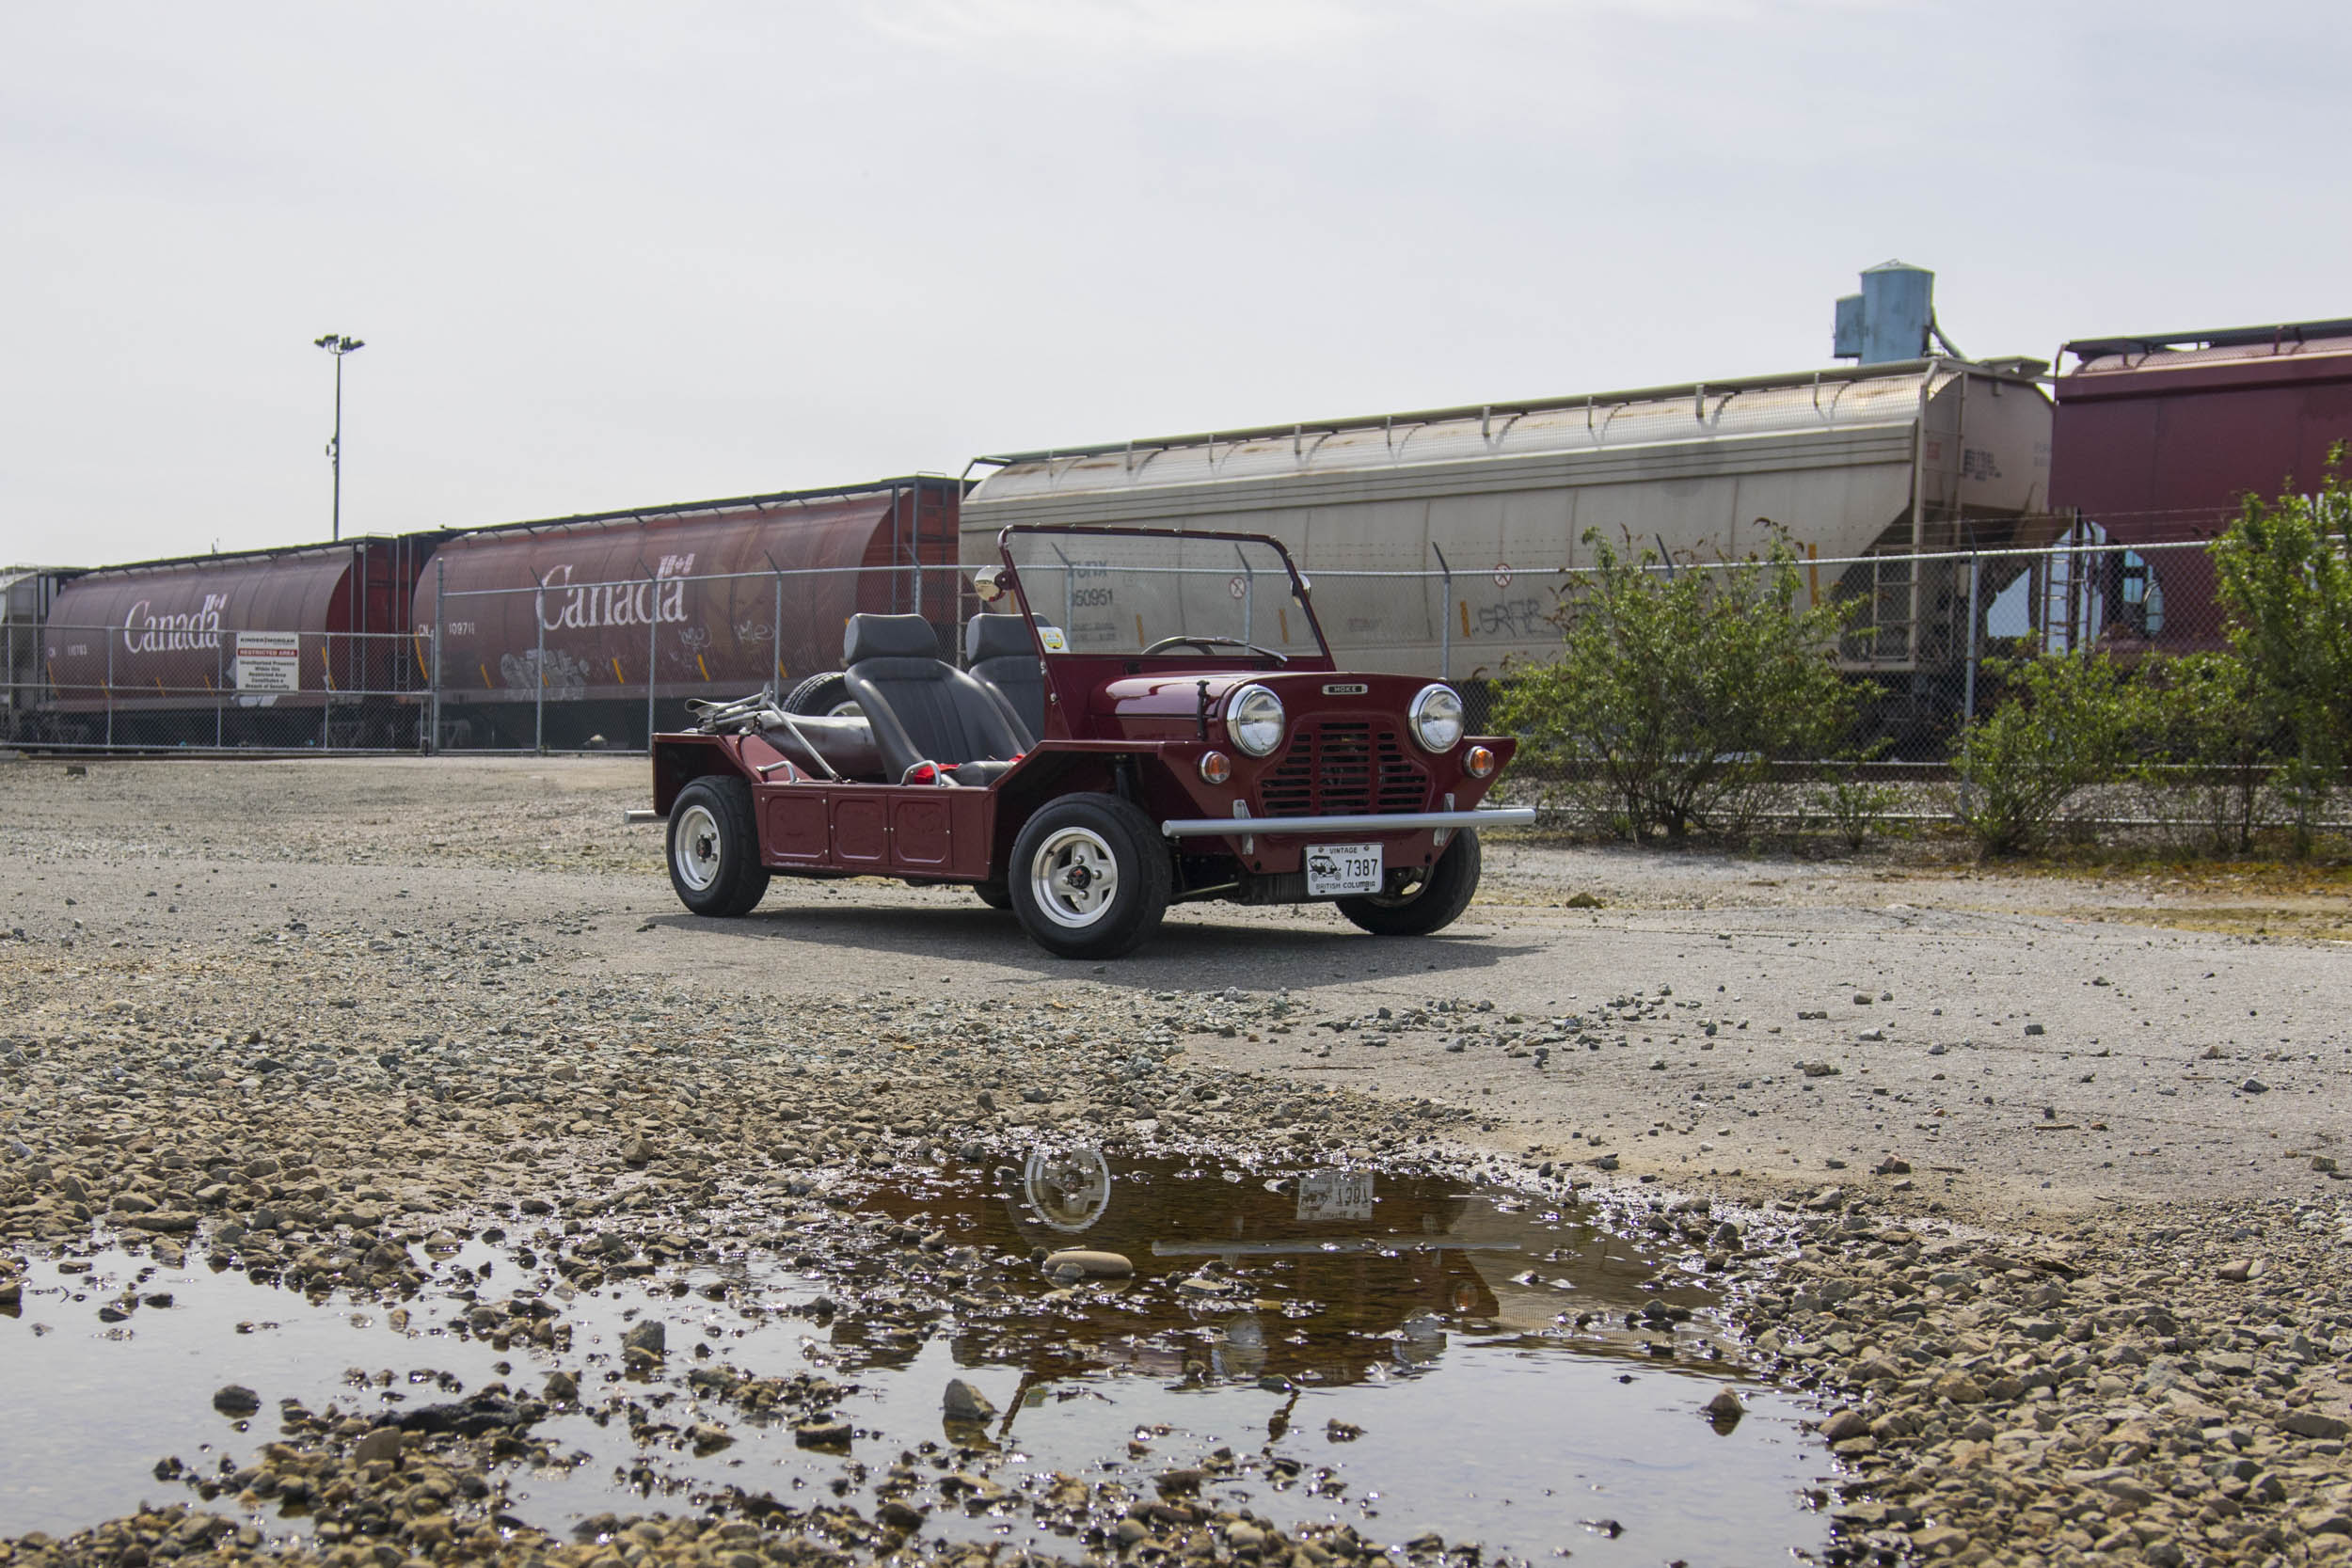 While it would probably get stuck in that puddle, the Moke is nonetheless endless fun on the road. It's very lightweight, the handling is just as good as a Mini, and all sorts of Cooper S bits can be bolted on to make it go faster.